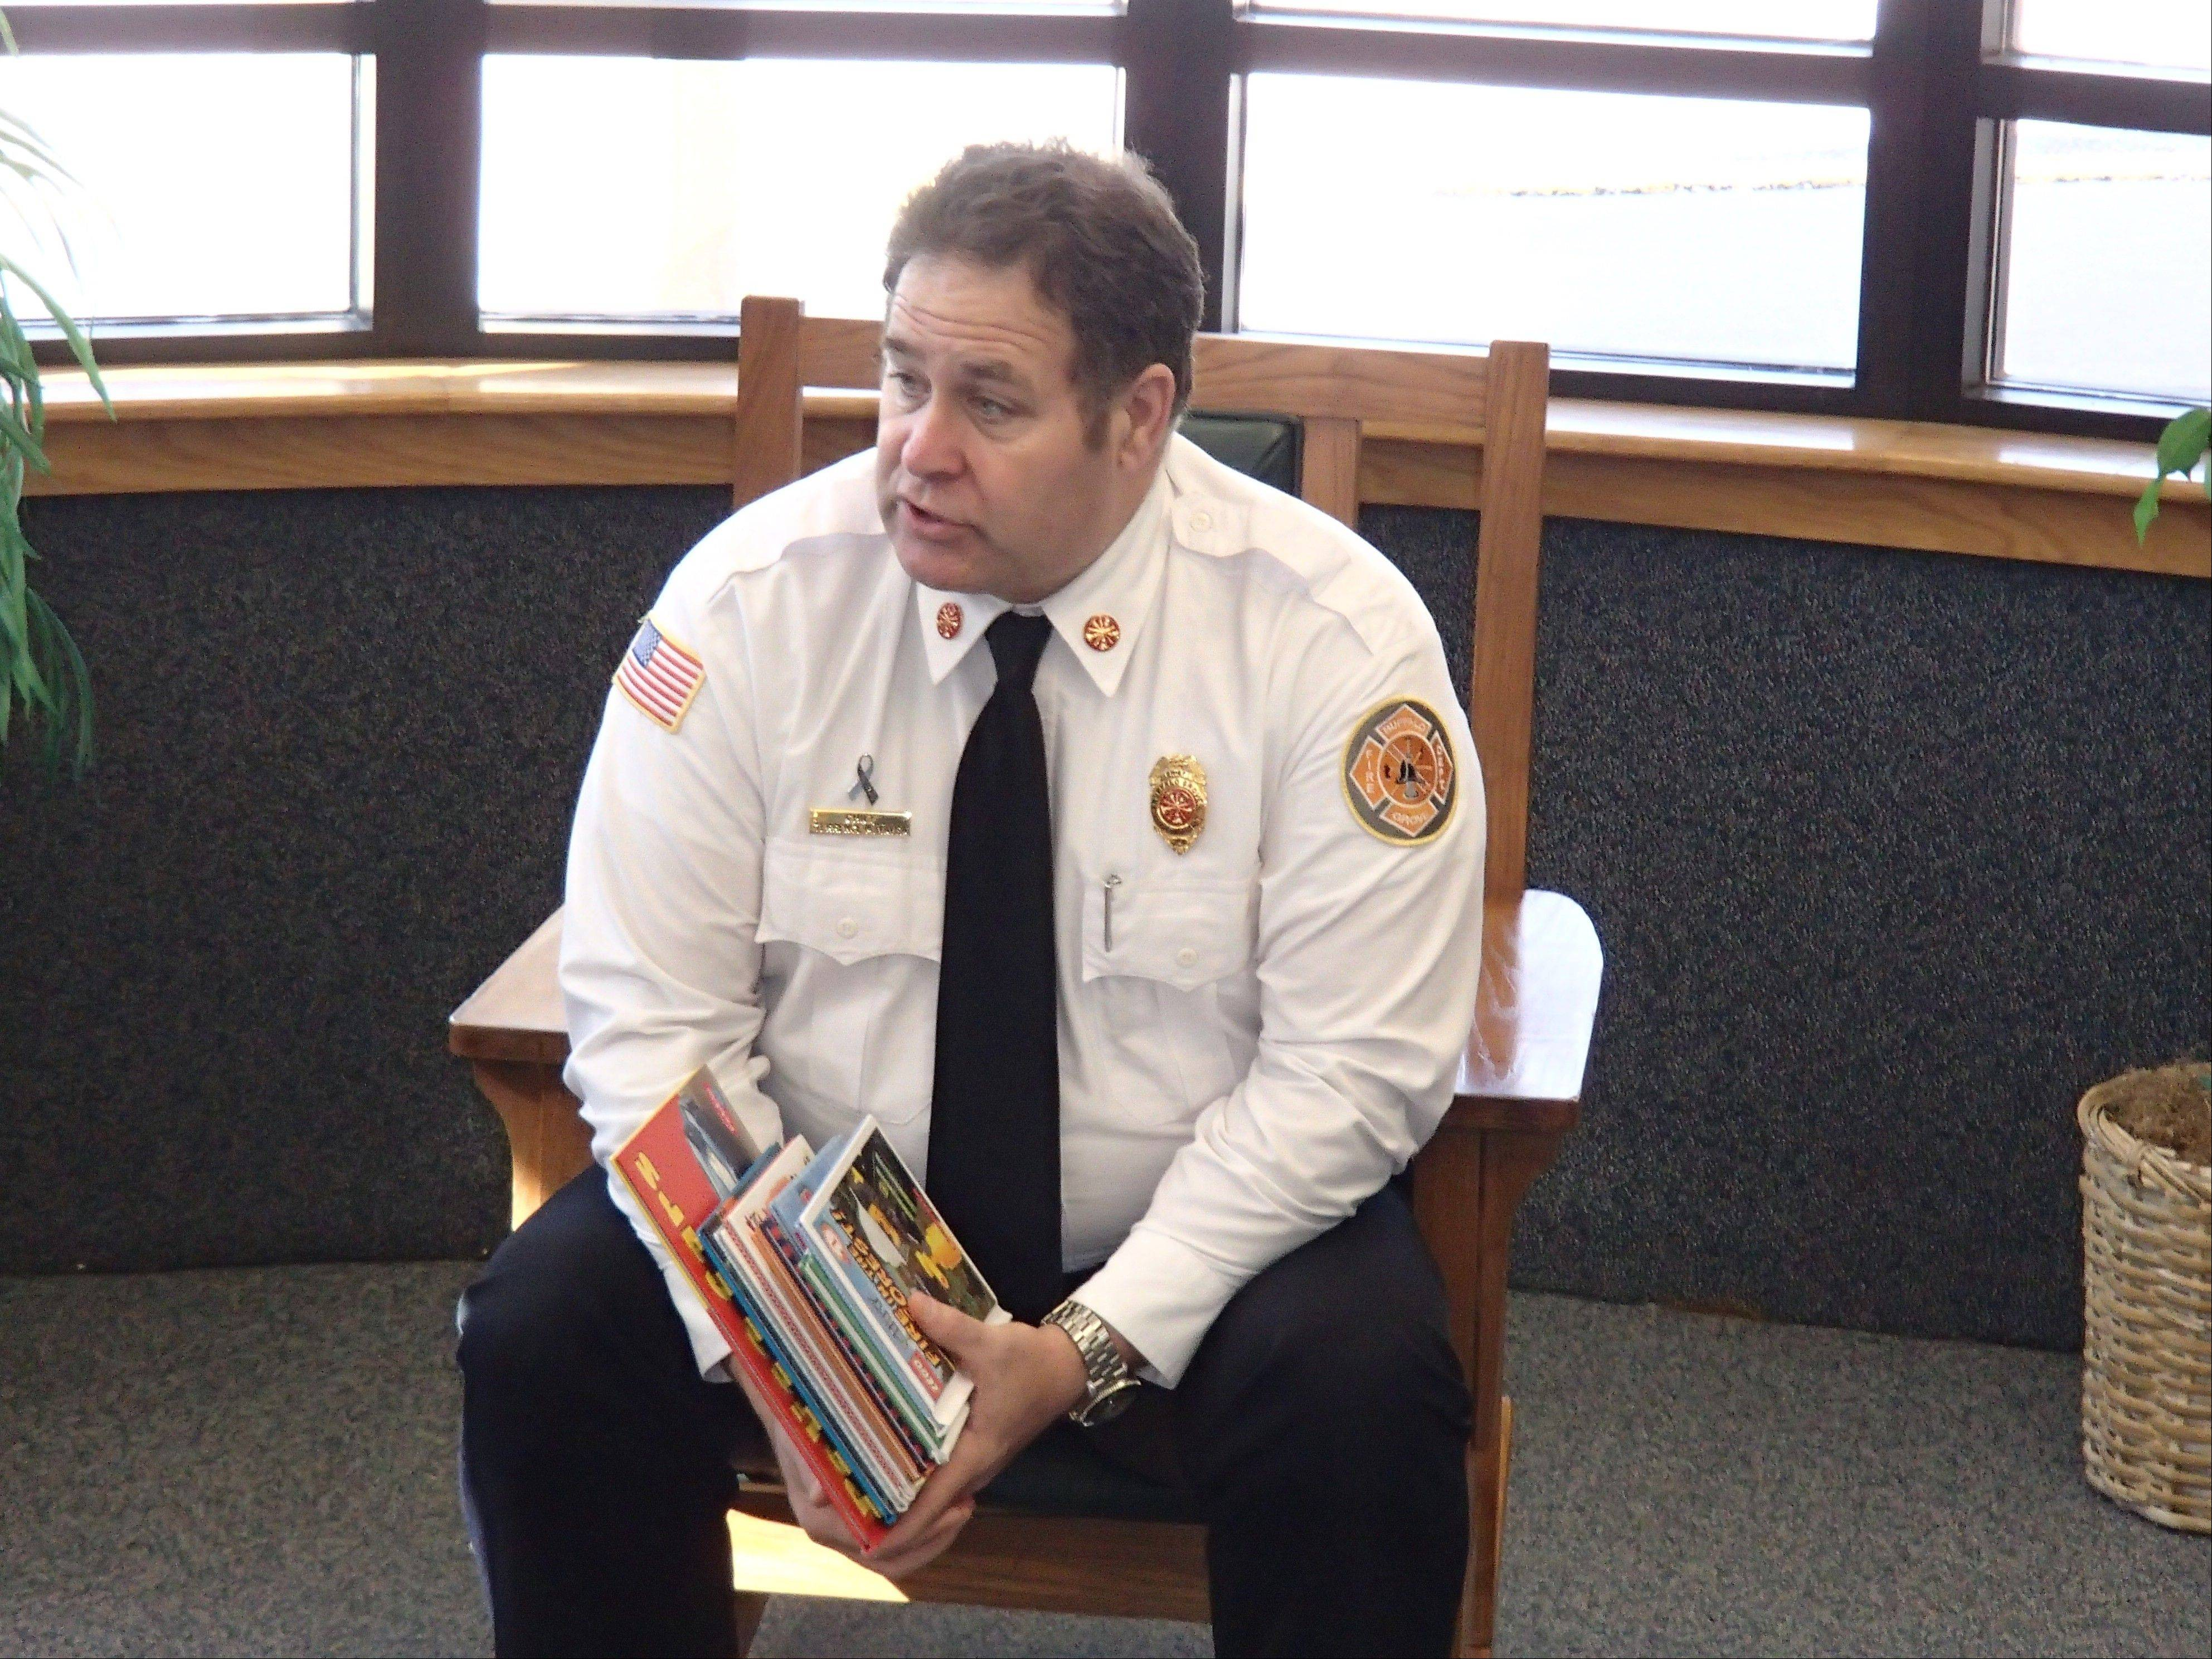 Buffalo Grove Fire Chief Terry Vavra reads a book to second-graders at Joyce Kilmer Elementary School in Buffalo Grove. Money from a memorial fund established in honor of 2-year-old Grant Wonders, who died in a fire Jan. 27, 1994, was used to buy the book.